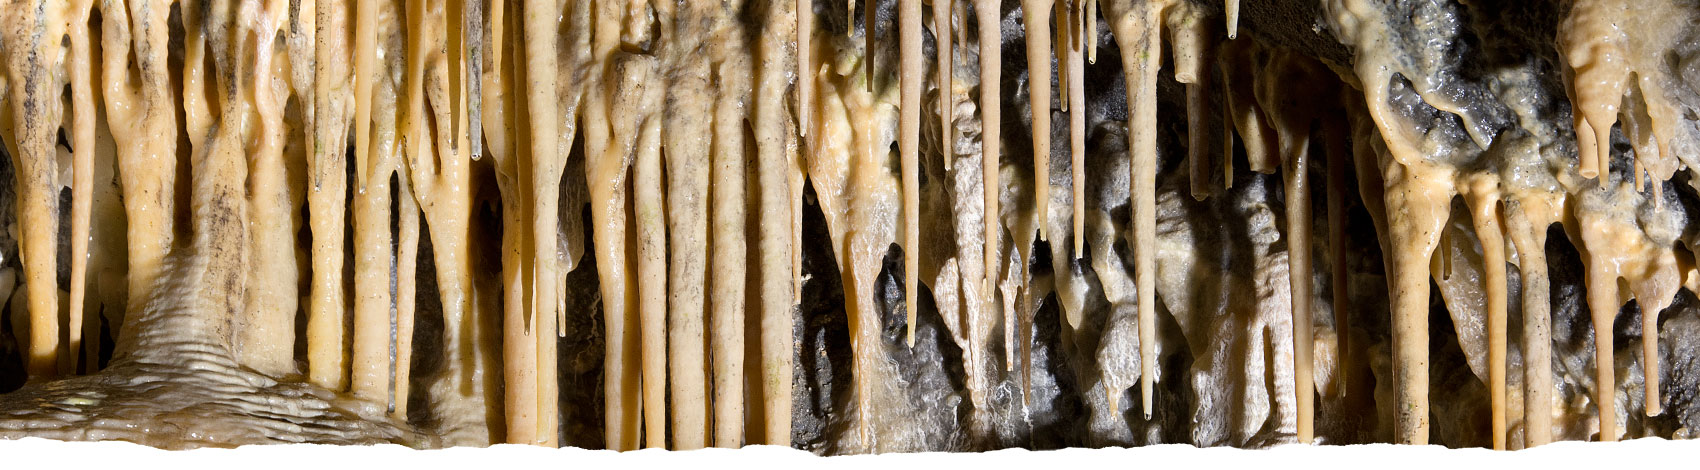 Stalactites at Treak Cliff Cavern